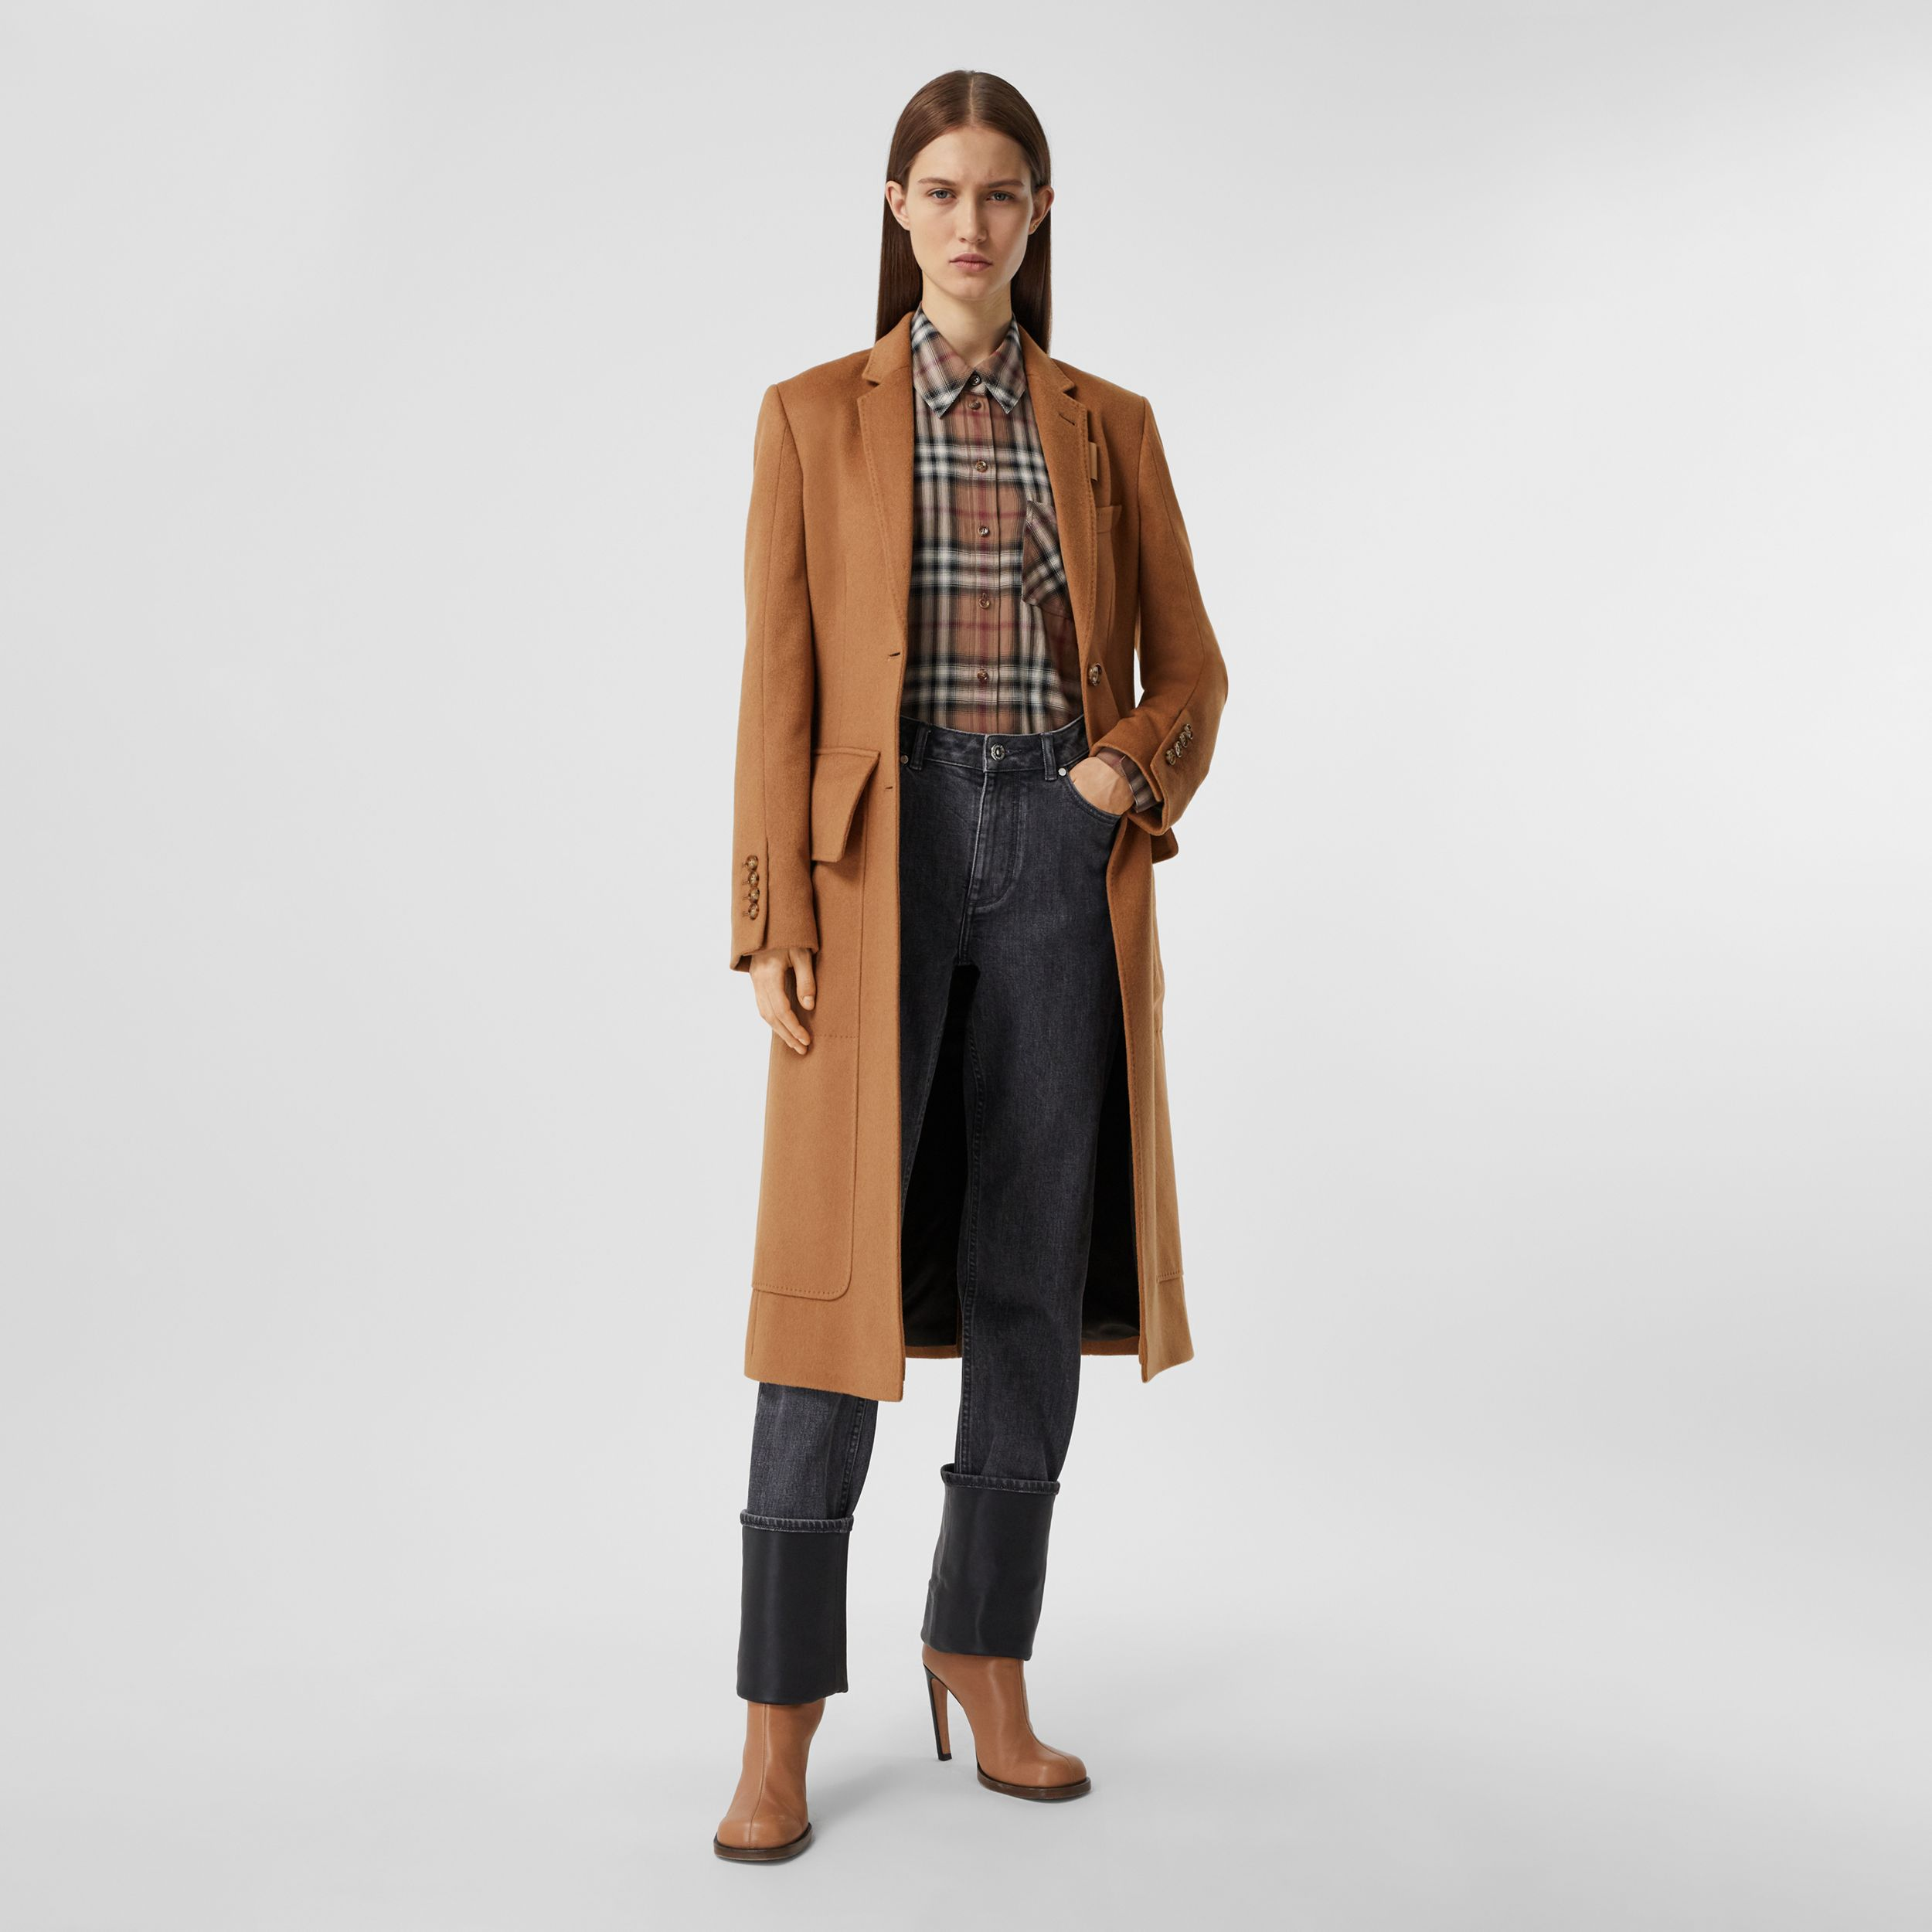 Cashmere Tailored Coat in Bronze - Women | Burberry Australia - 1